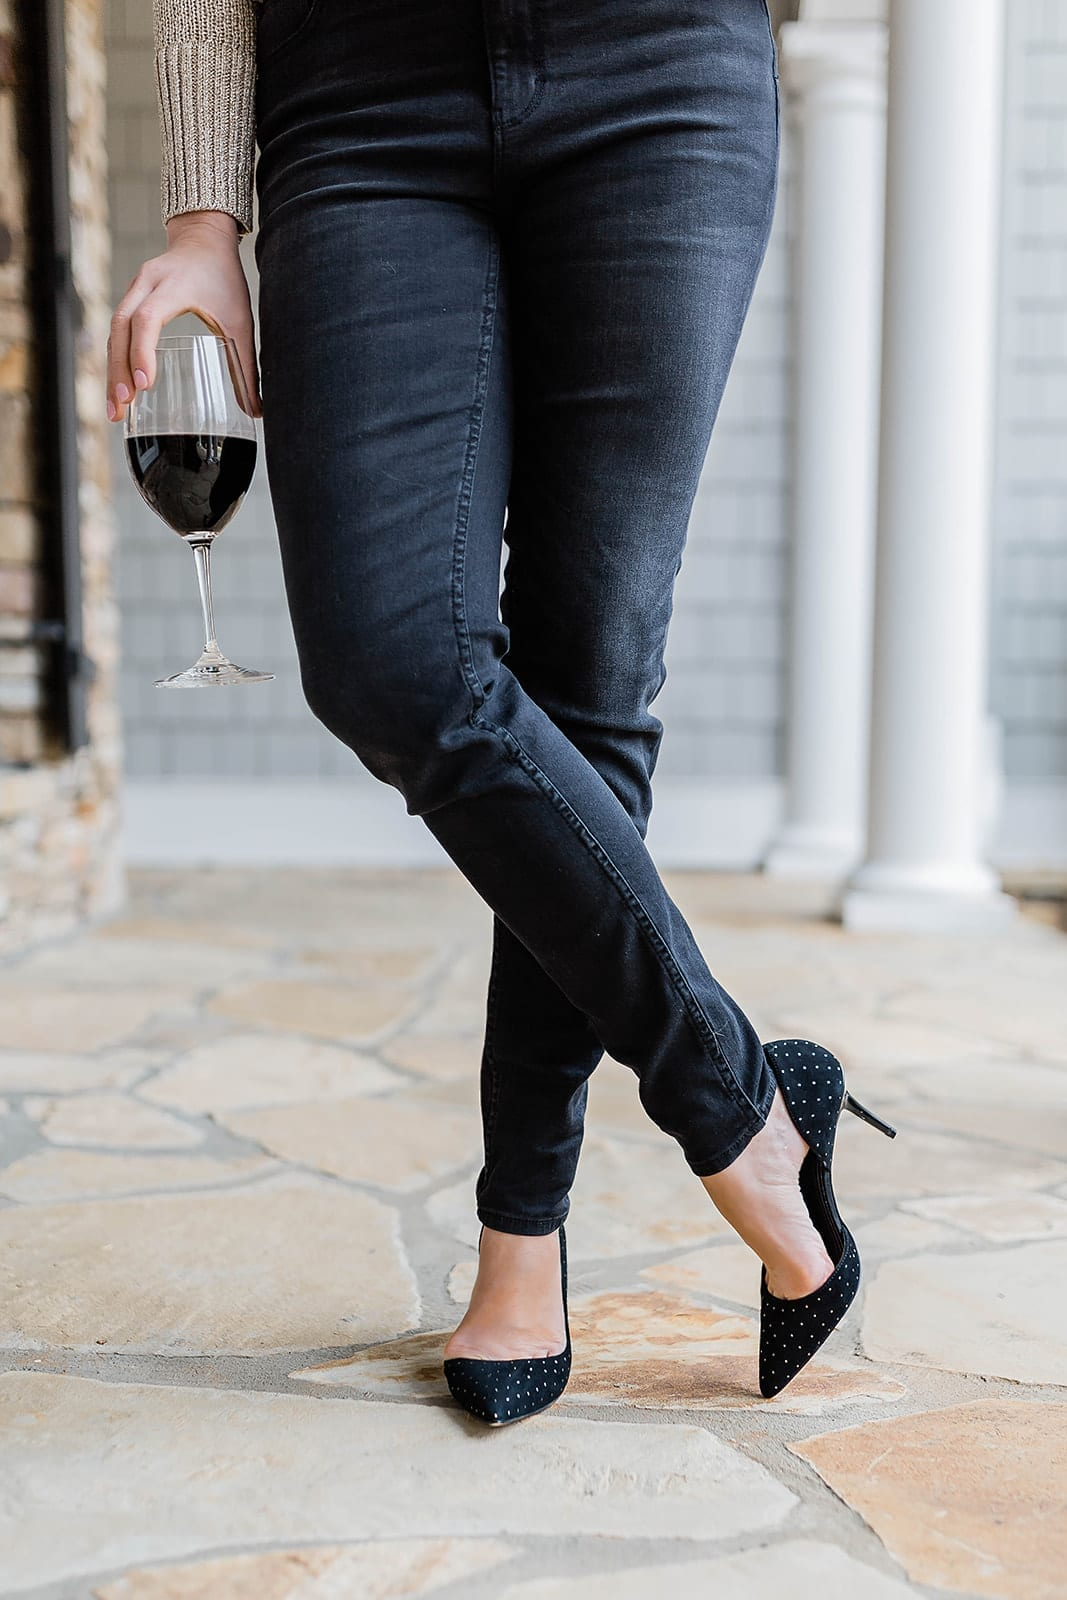 Crystal Black Pumps on sale for $50 with black jeans!